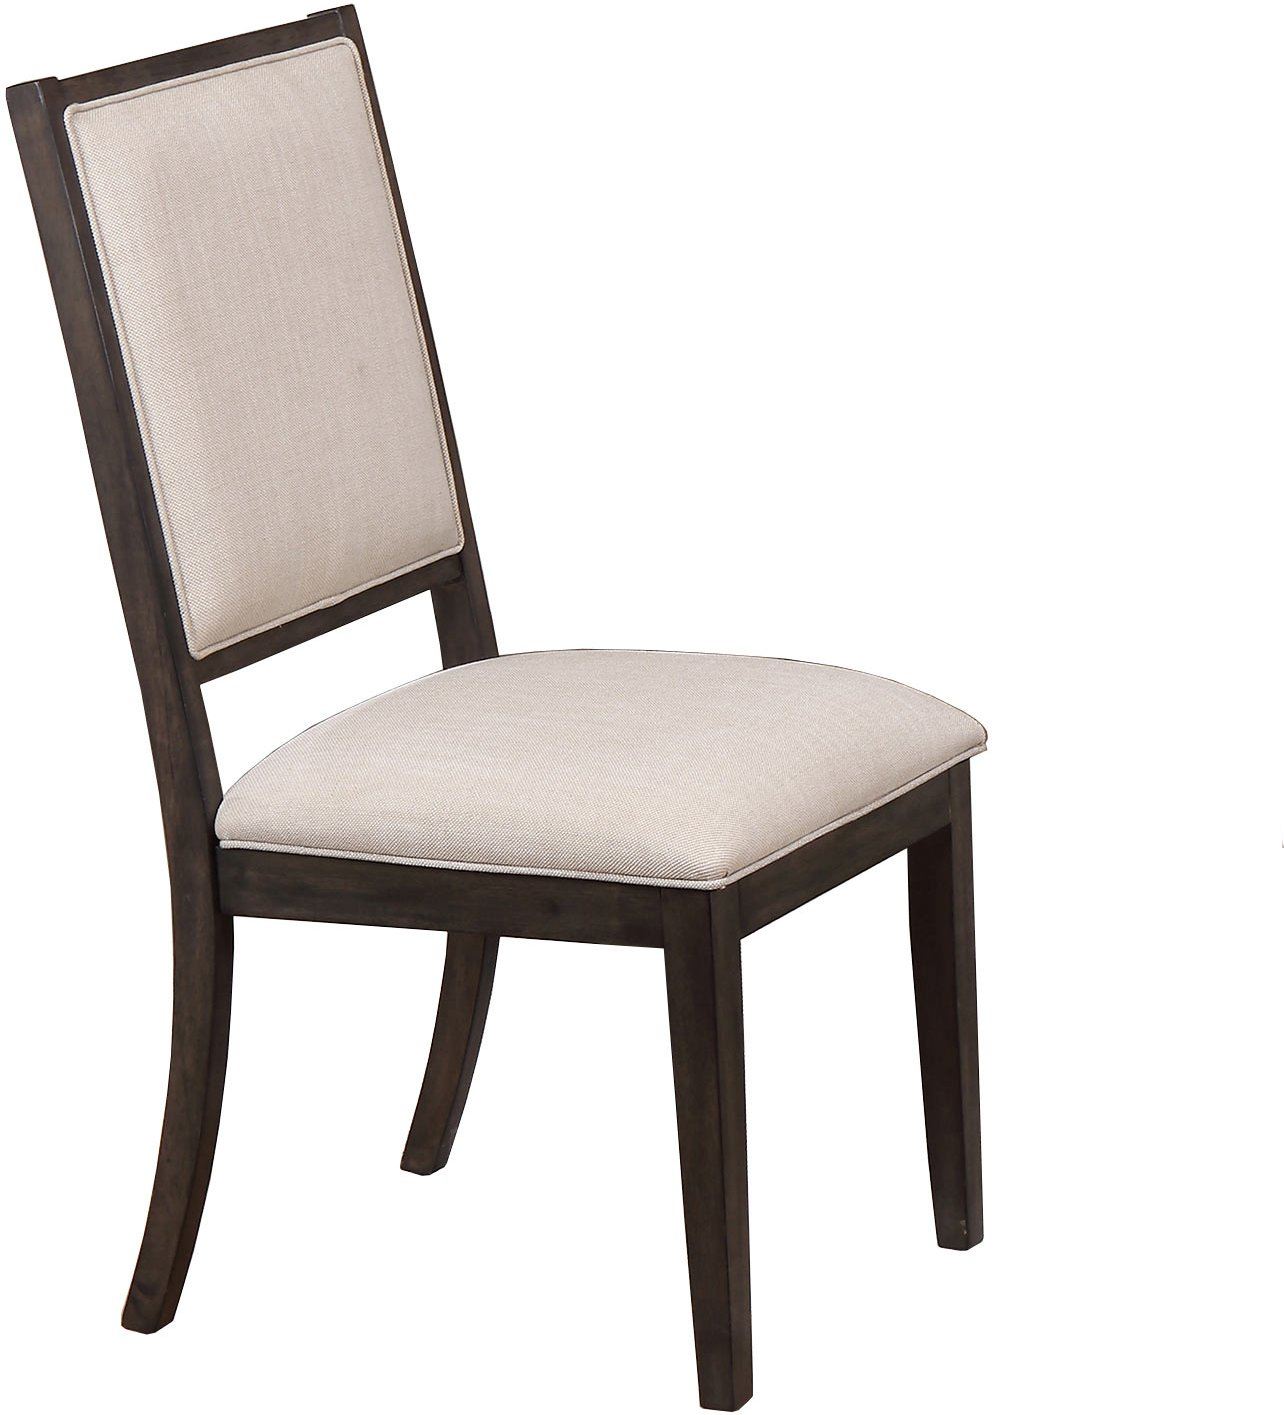 gray upholstered dining chairs with cane seats 5 piece contemporary set hartford rc